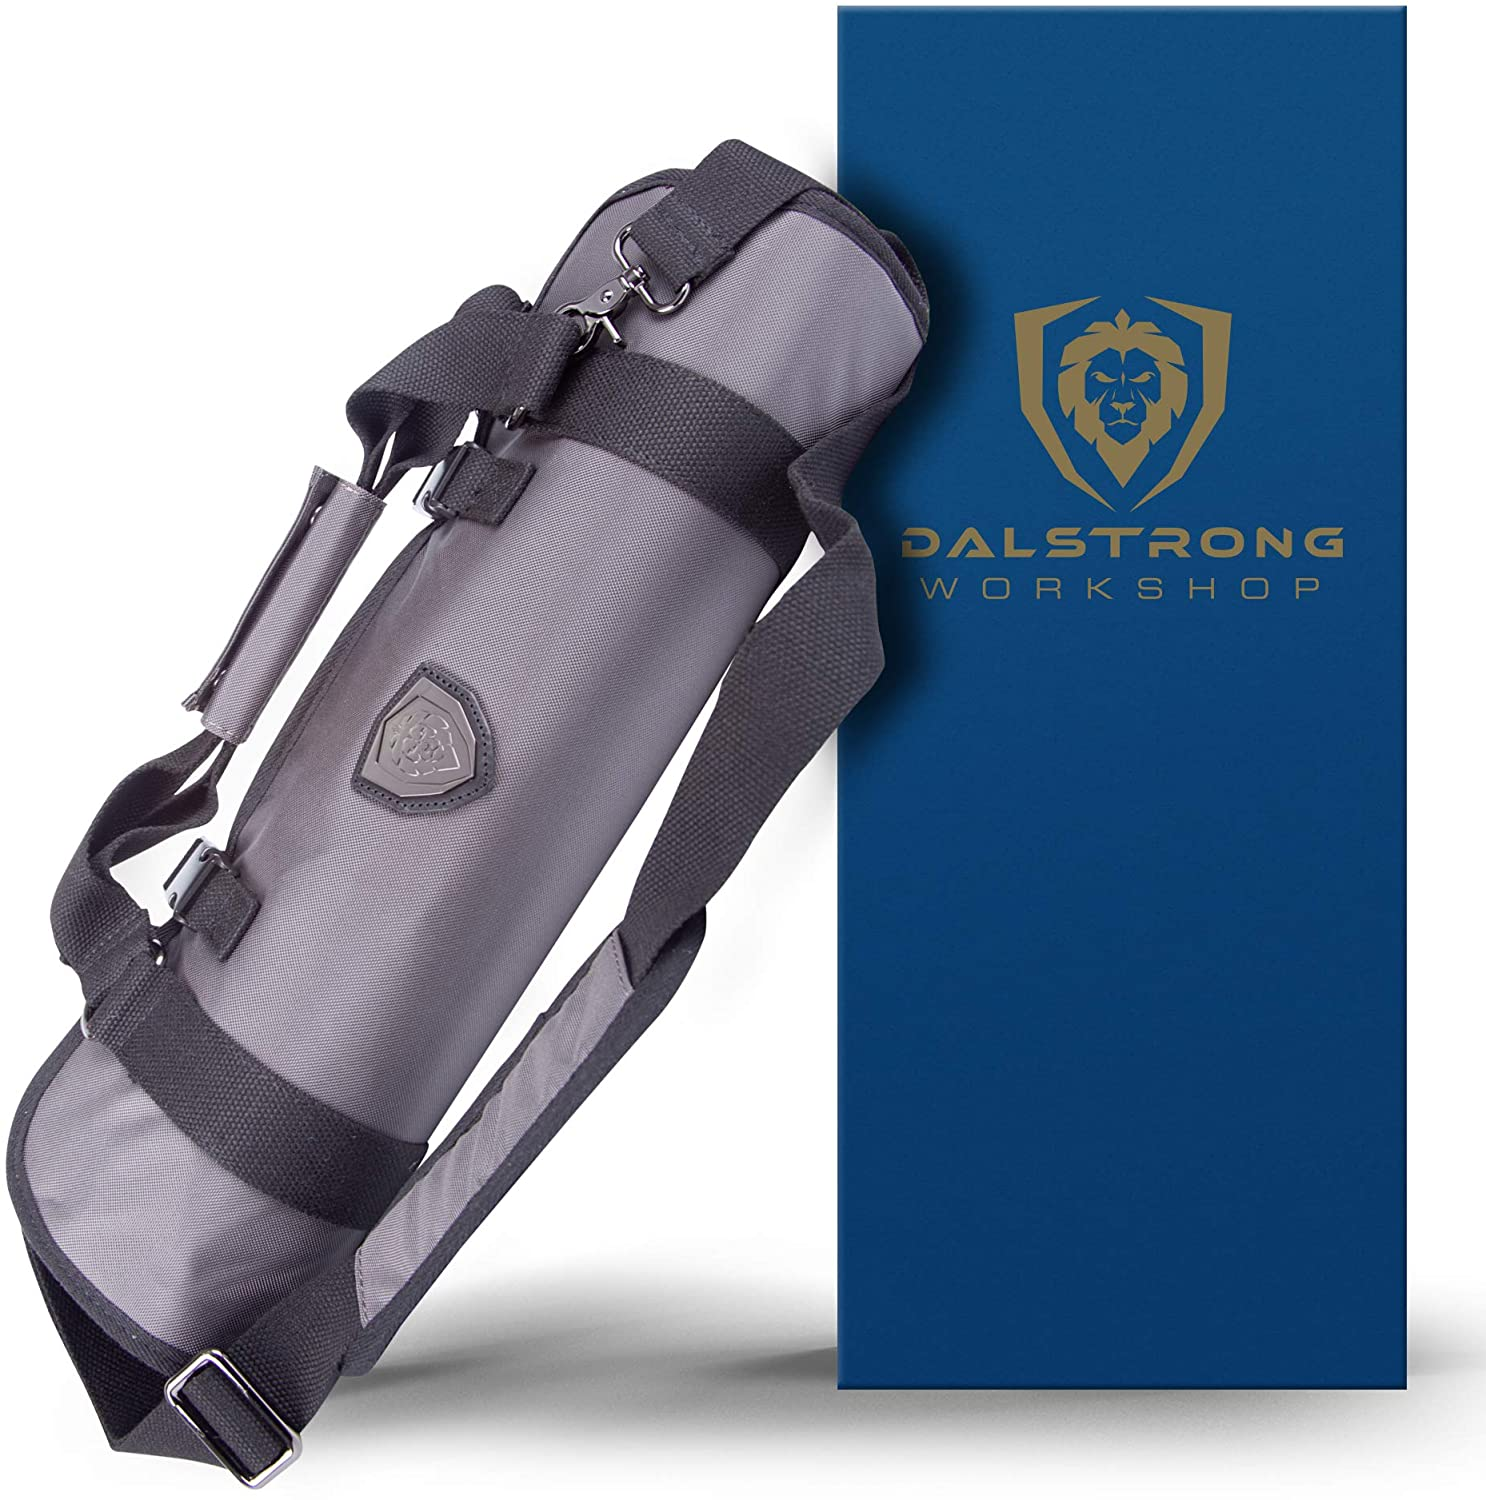 Best premium & large Japanese knife roll- DALSTRONG Ballistic Series rolled up